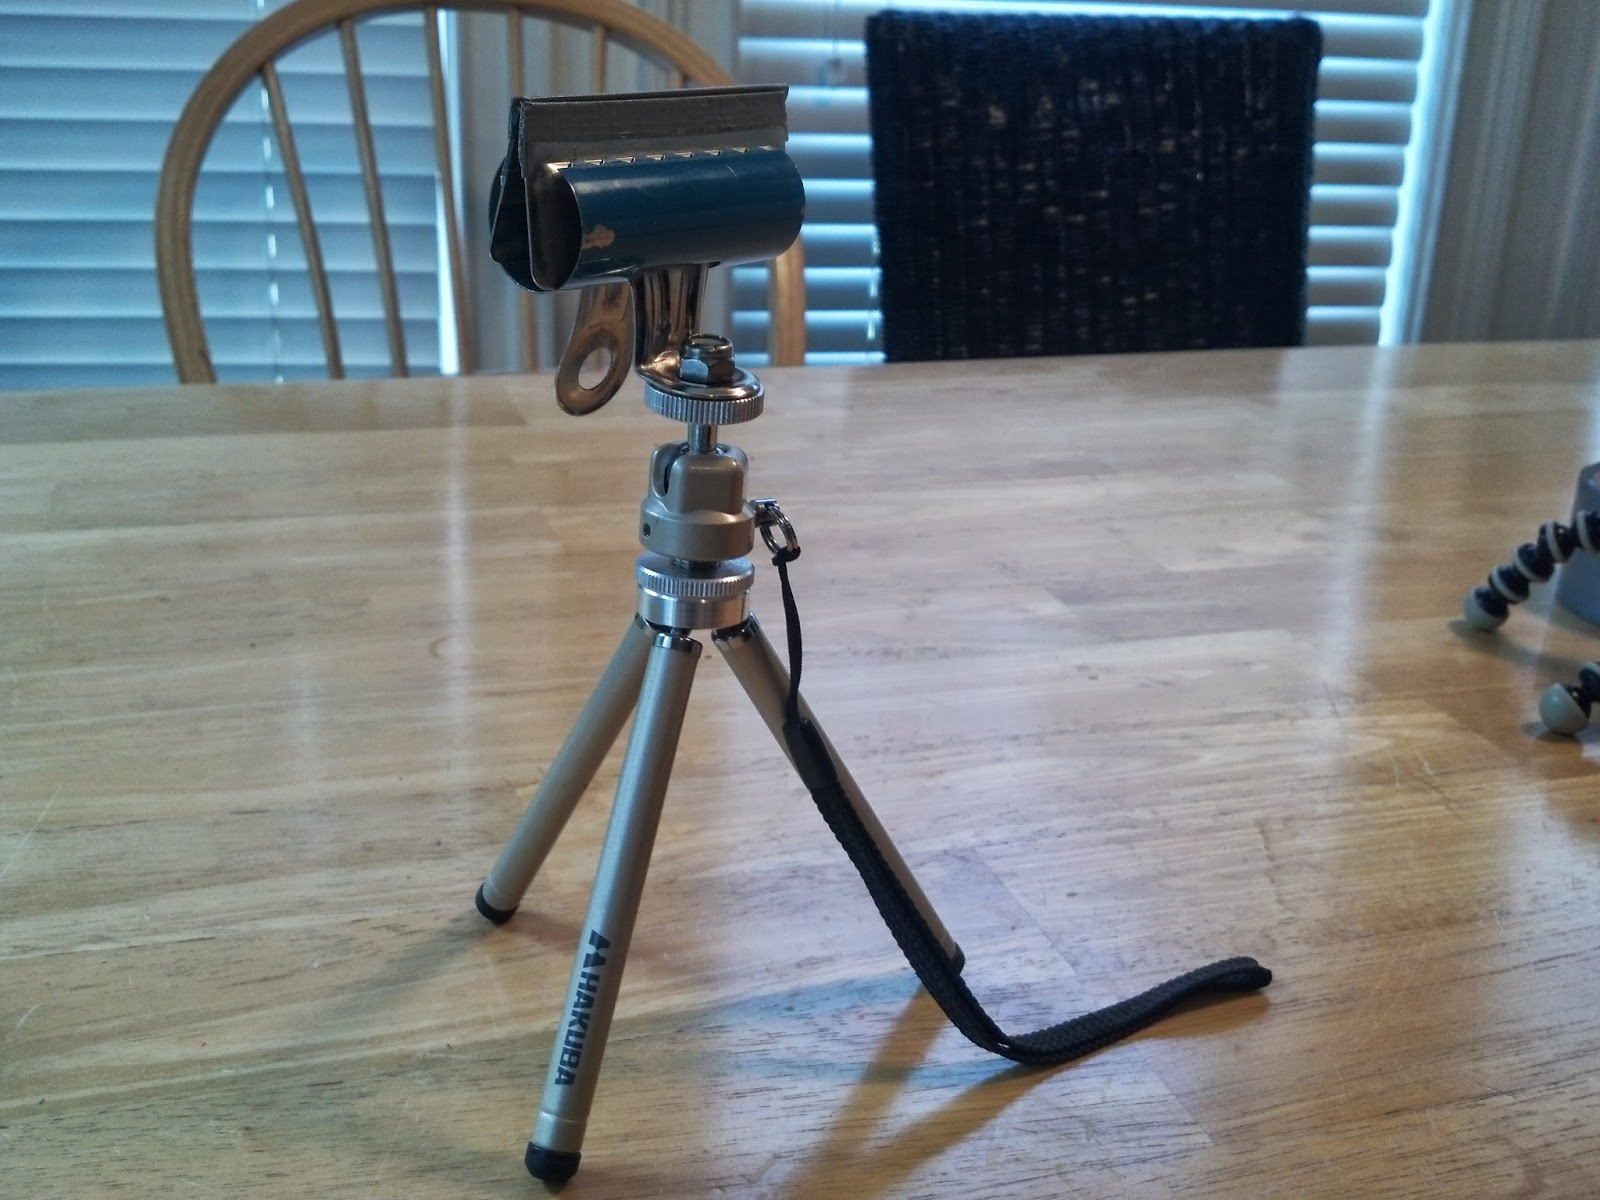 Bulldog clip attached to tripod to hold smartphone